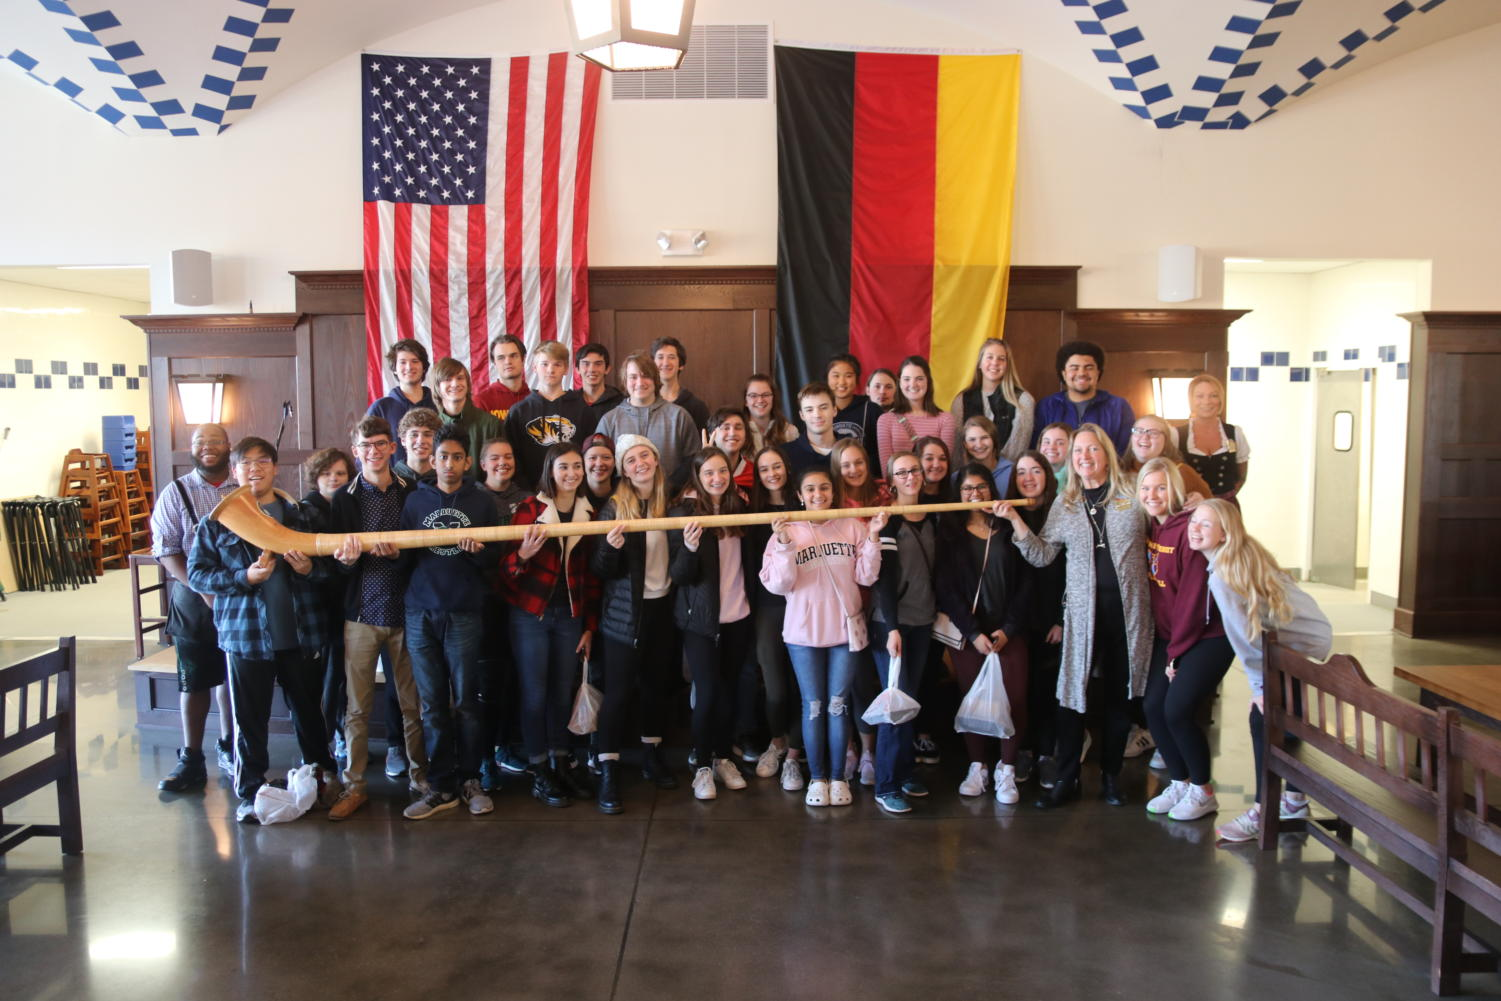 After+their+visit+to+the+Blanche+M+Touhill+Performing+Arts+Center%2C+German+III%2C+IV+and+V+students+pose+after+eating+lunch+at+the+Hofbrauhaus+in+Belleville%2C+Ill.%2C+a+German+brewery+and+restaurant.+